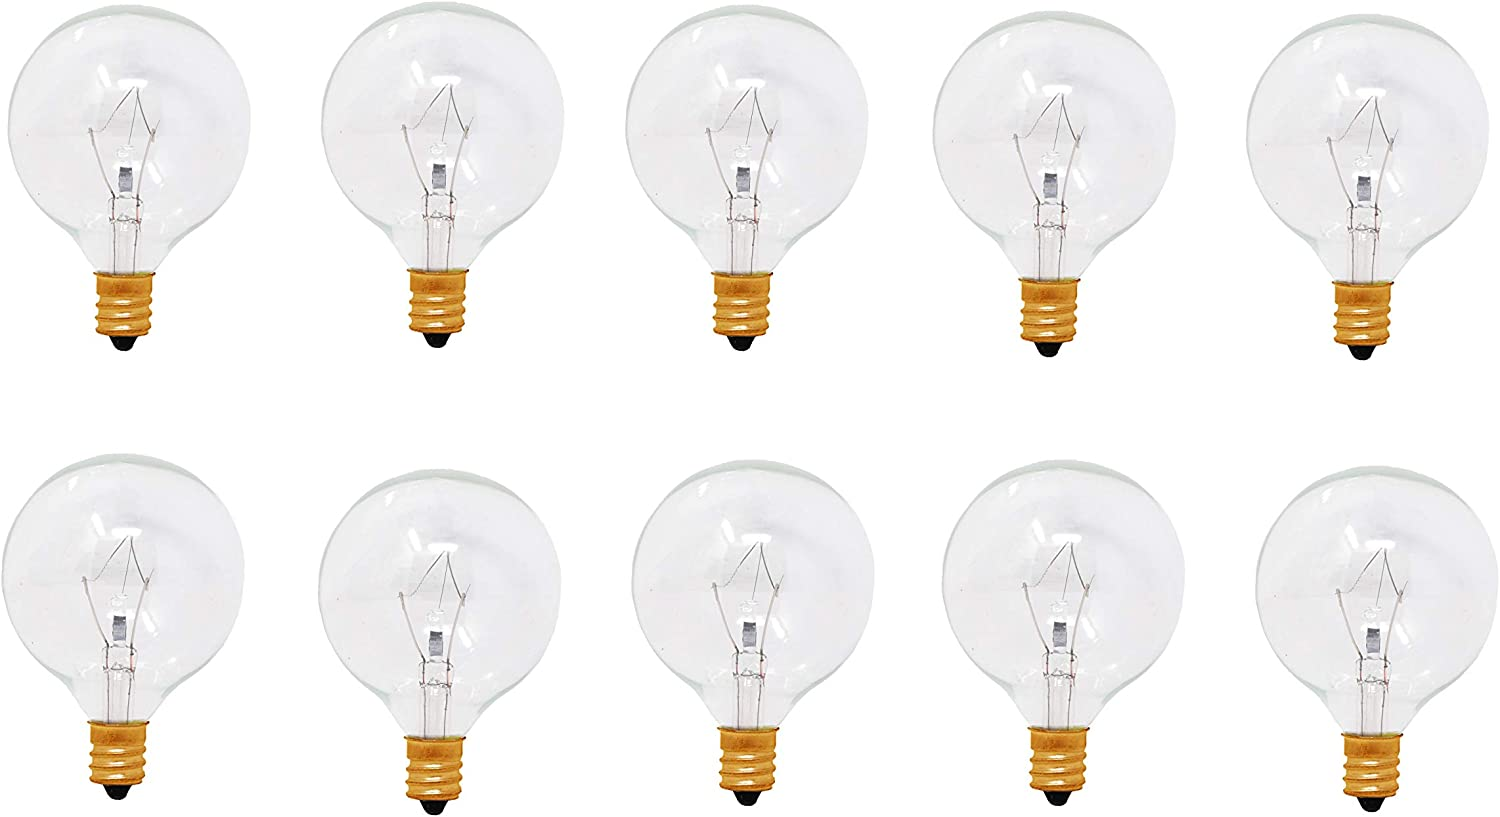 Mandala Crafts Replacement Light Bulbs for Scent Wax Warmer, Candle Melt, Fragrance Burner, Oil Diffuser, Lamp, E12,120v 40-Watt G16.5, 10 Pack